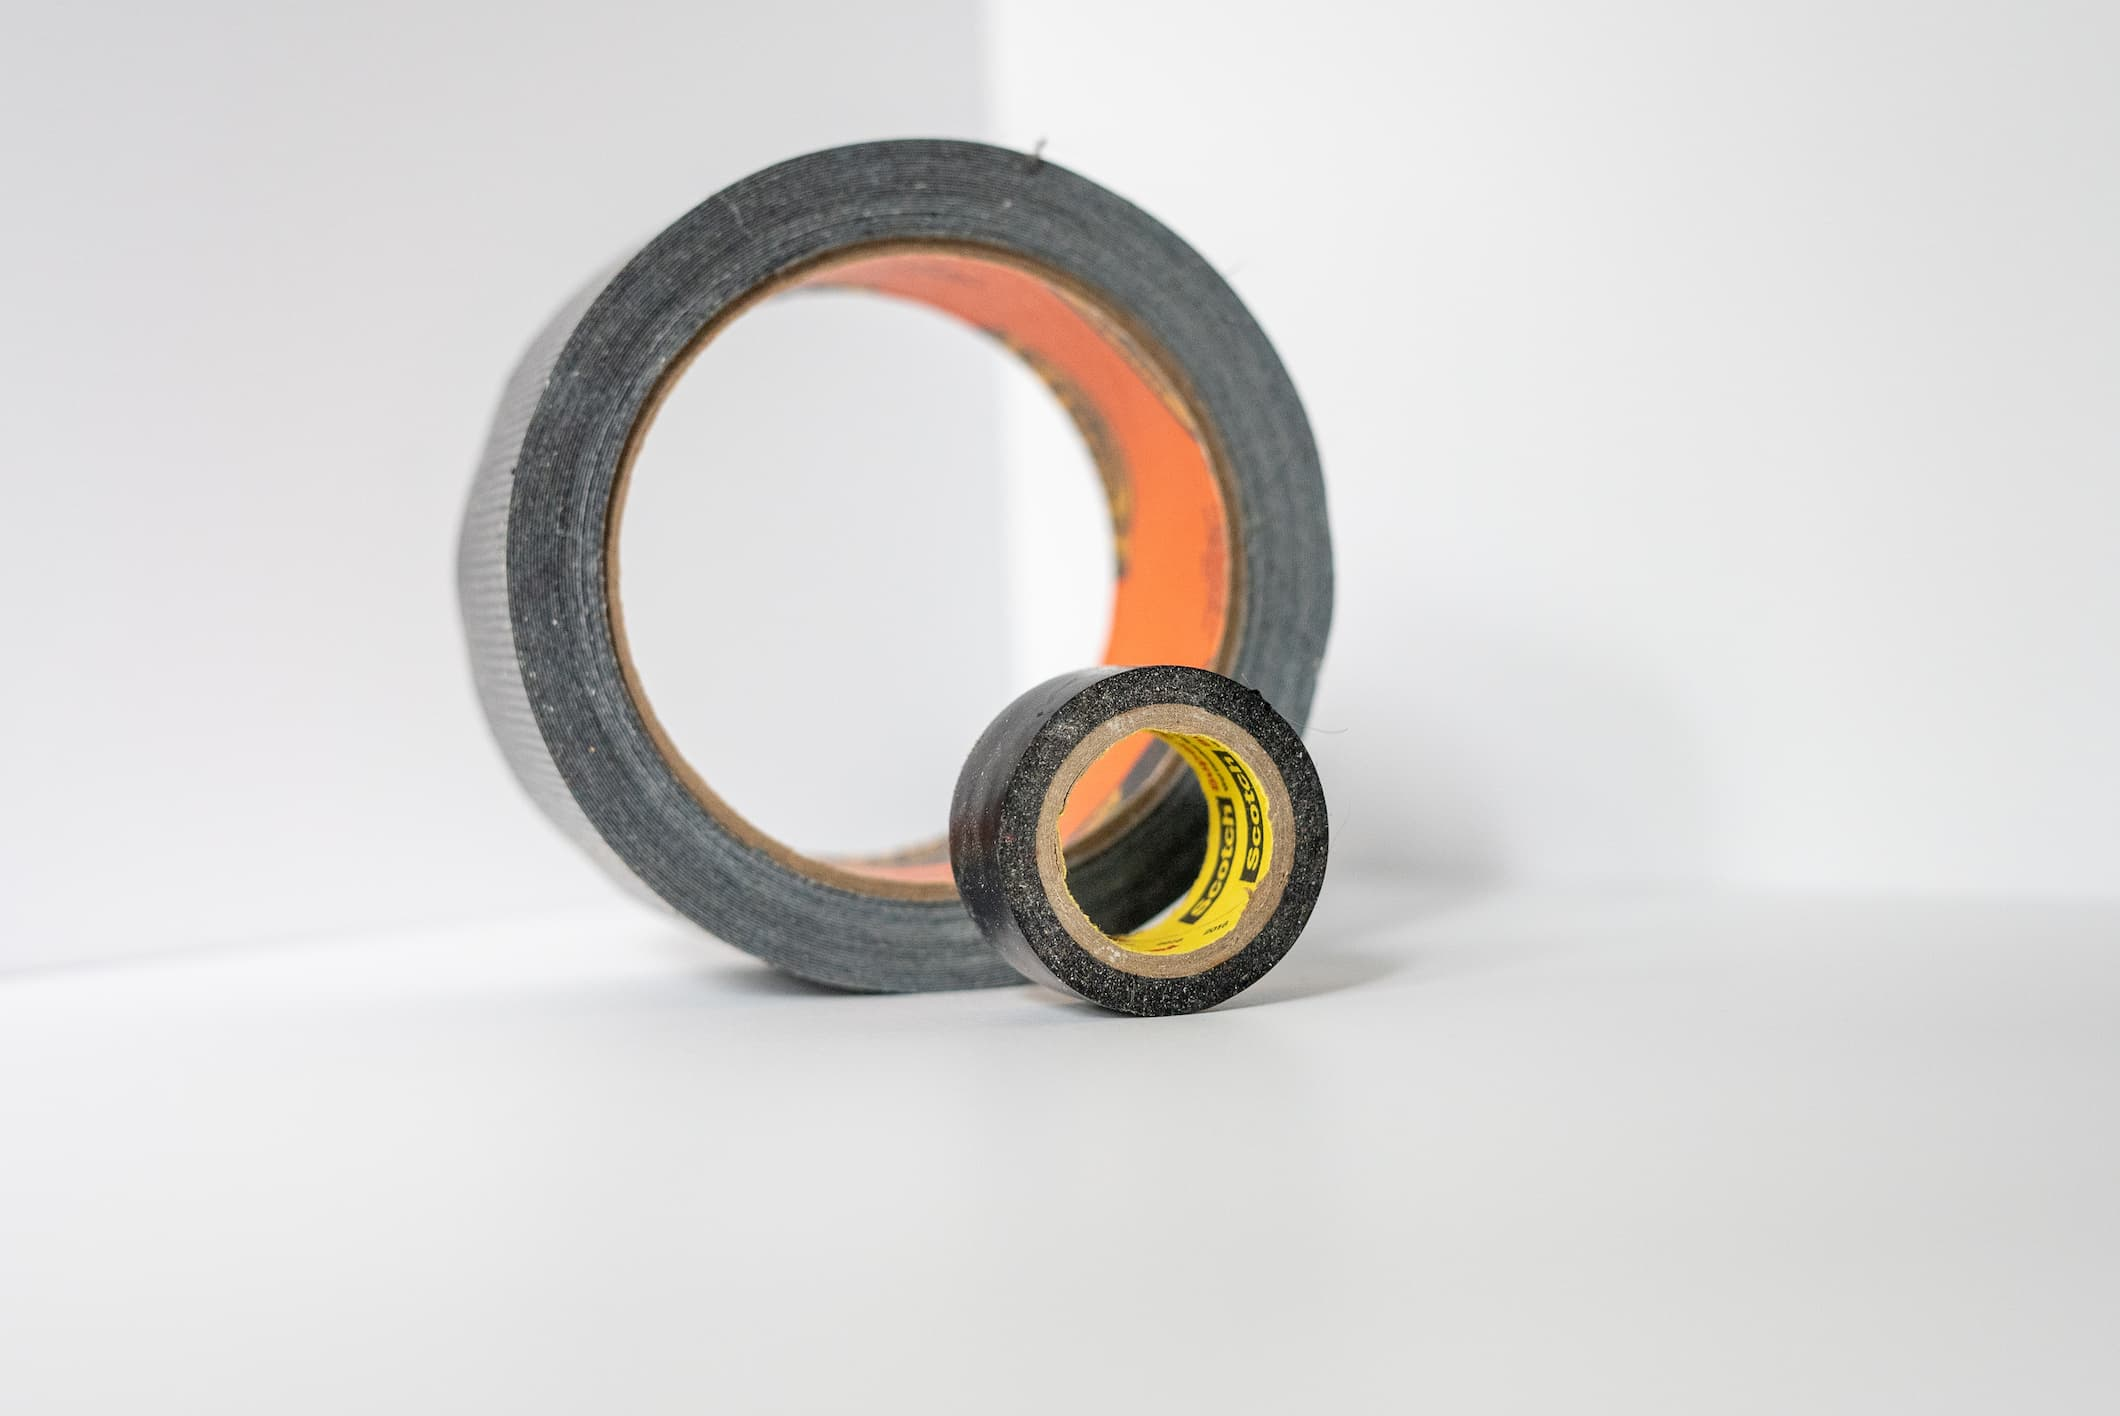 DIY Without Fear | Can You Use Duct Tape Instead of Electrical Tape In A Pinch?